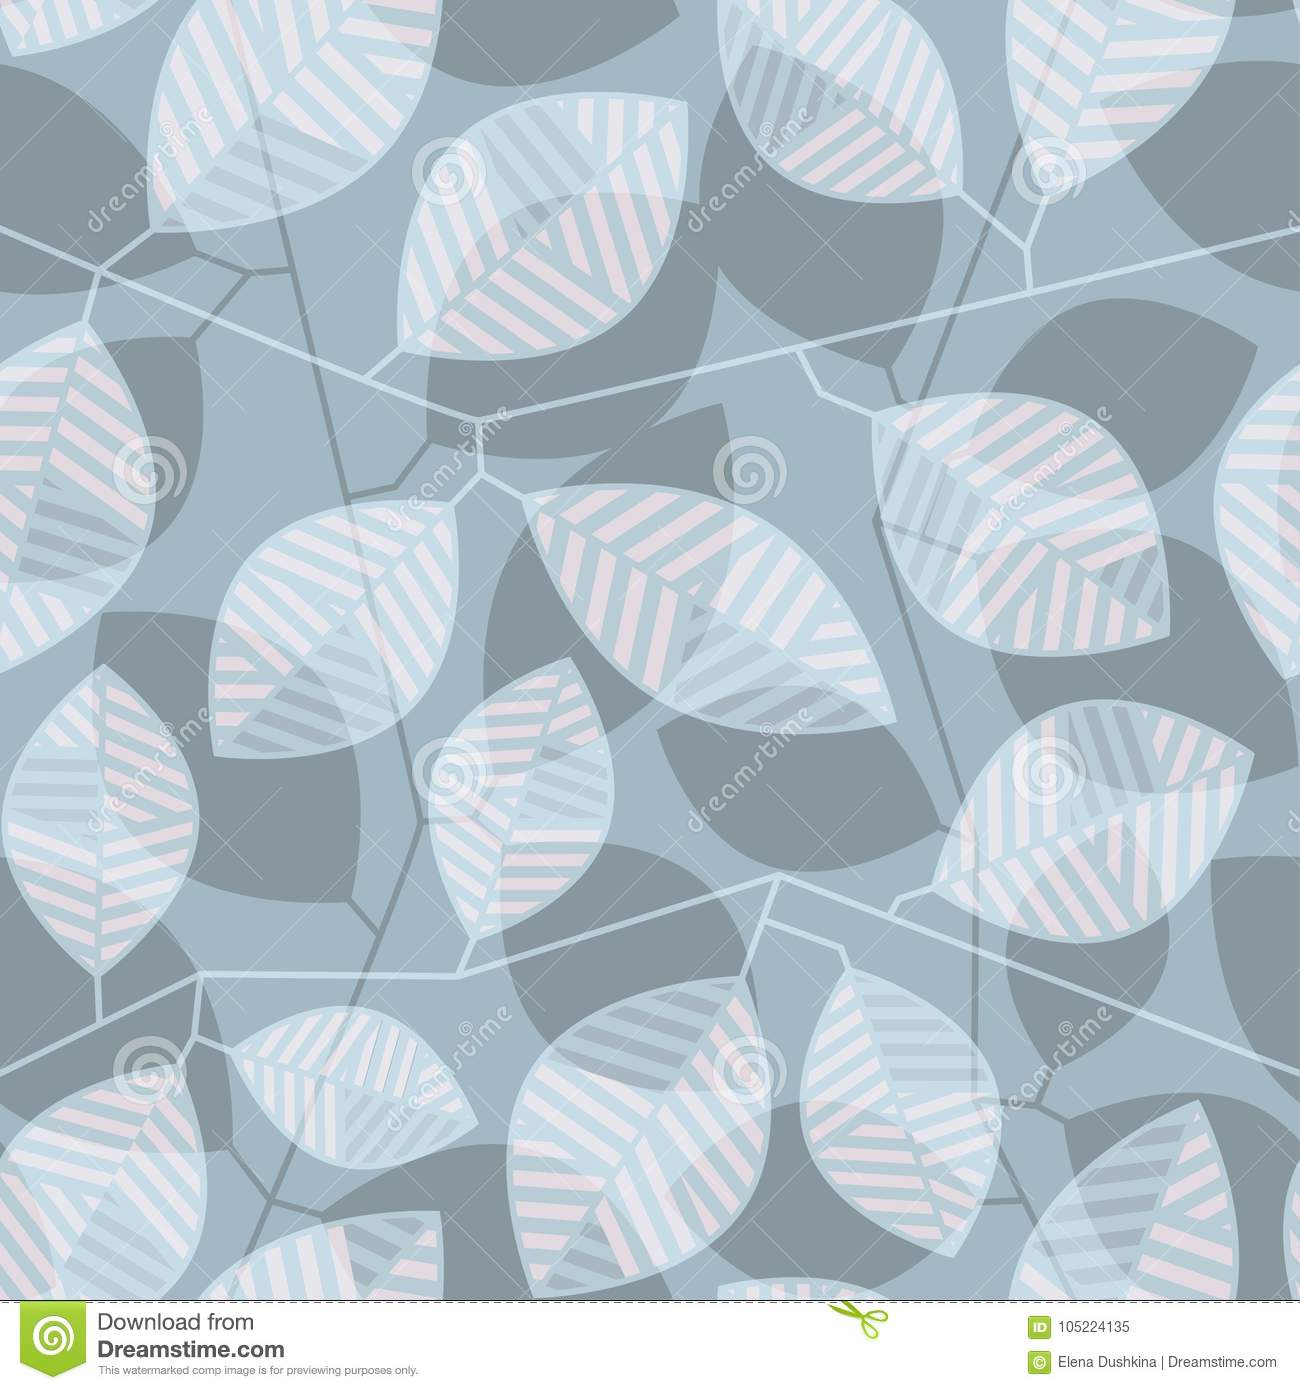 Seamless Pattern With Striped Leaves And Stems In Shades Of Gray Stock Vector Illustration Of Neutral Decoration 105224135